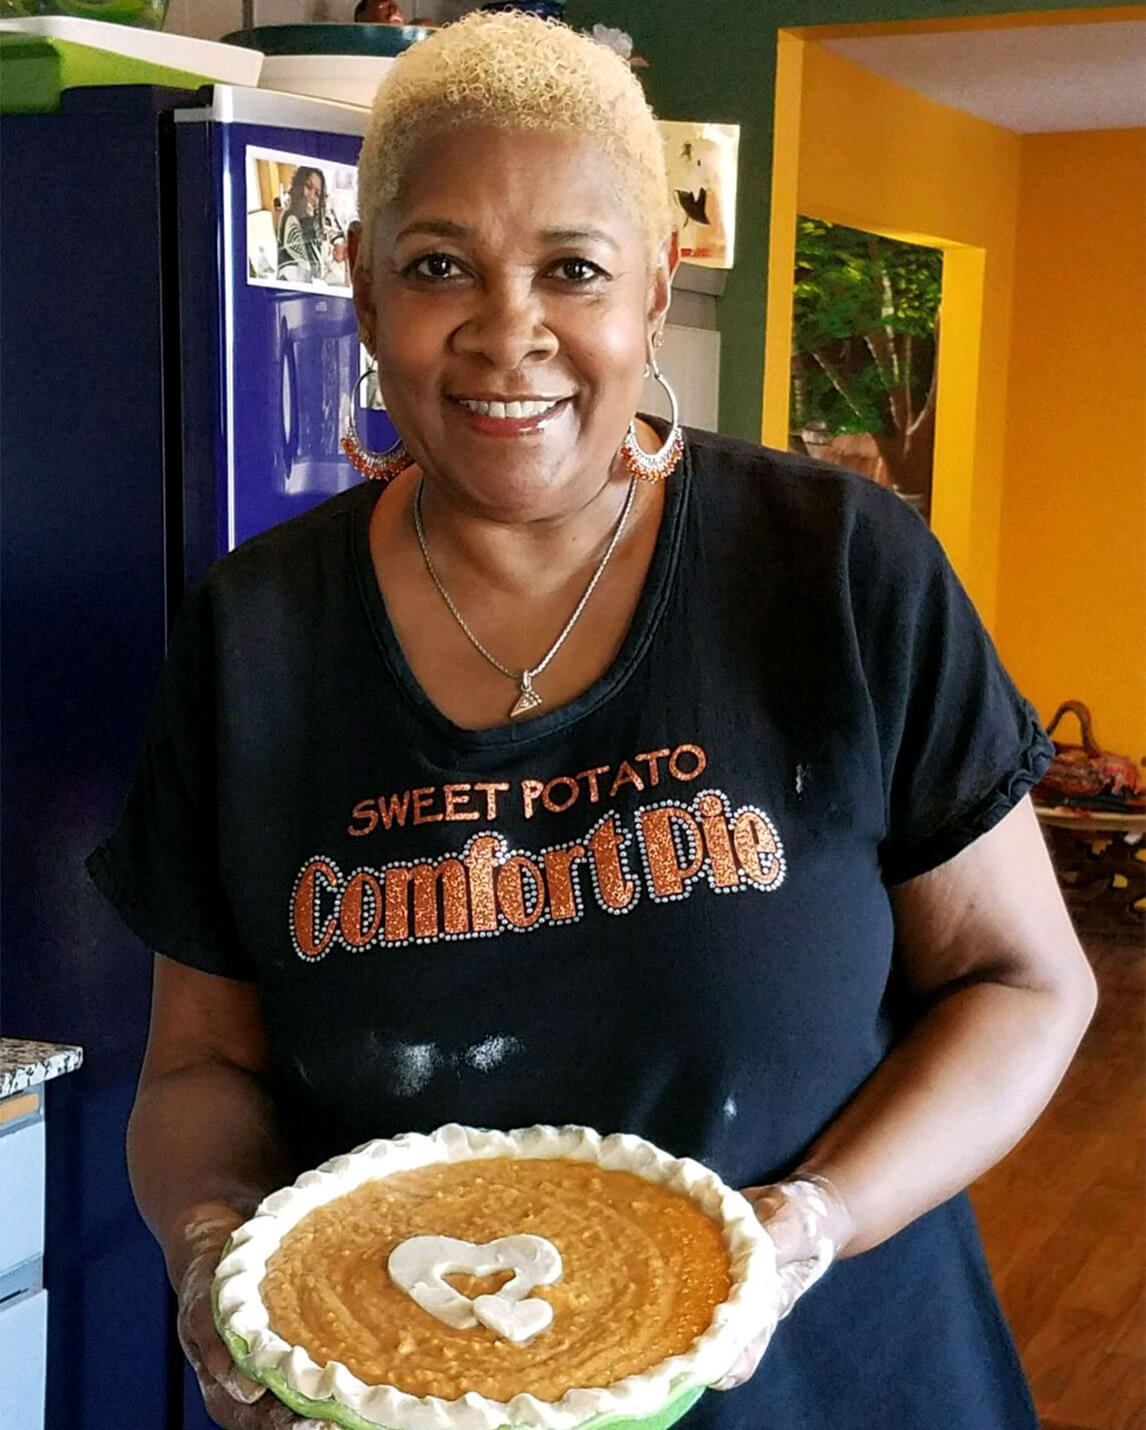 Rose holding a Sweet Potato Pie